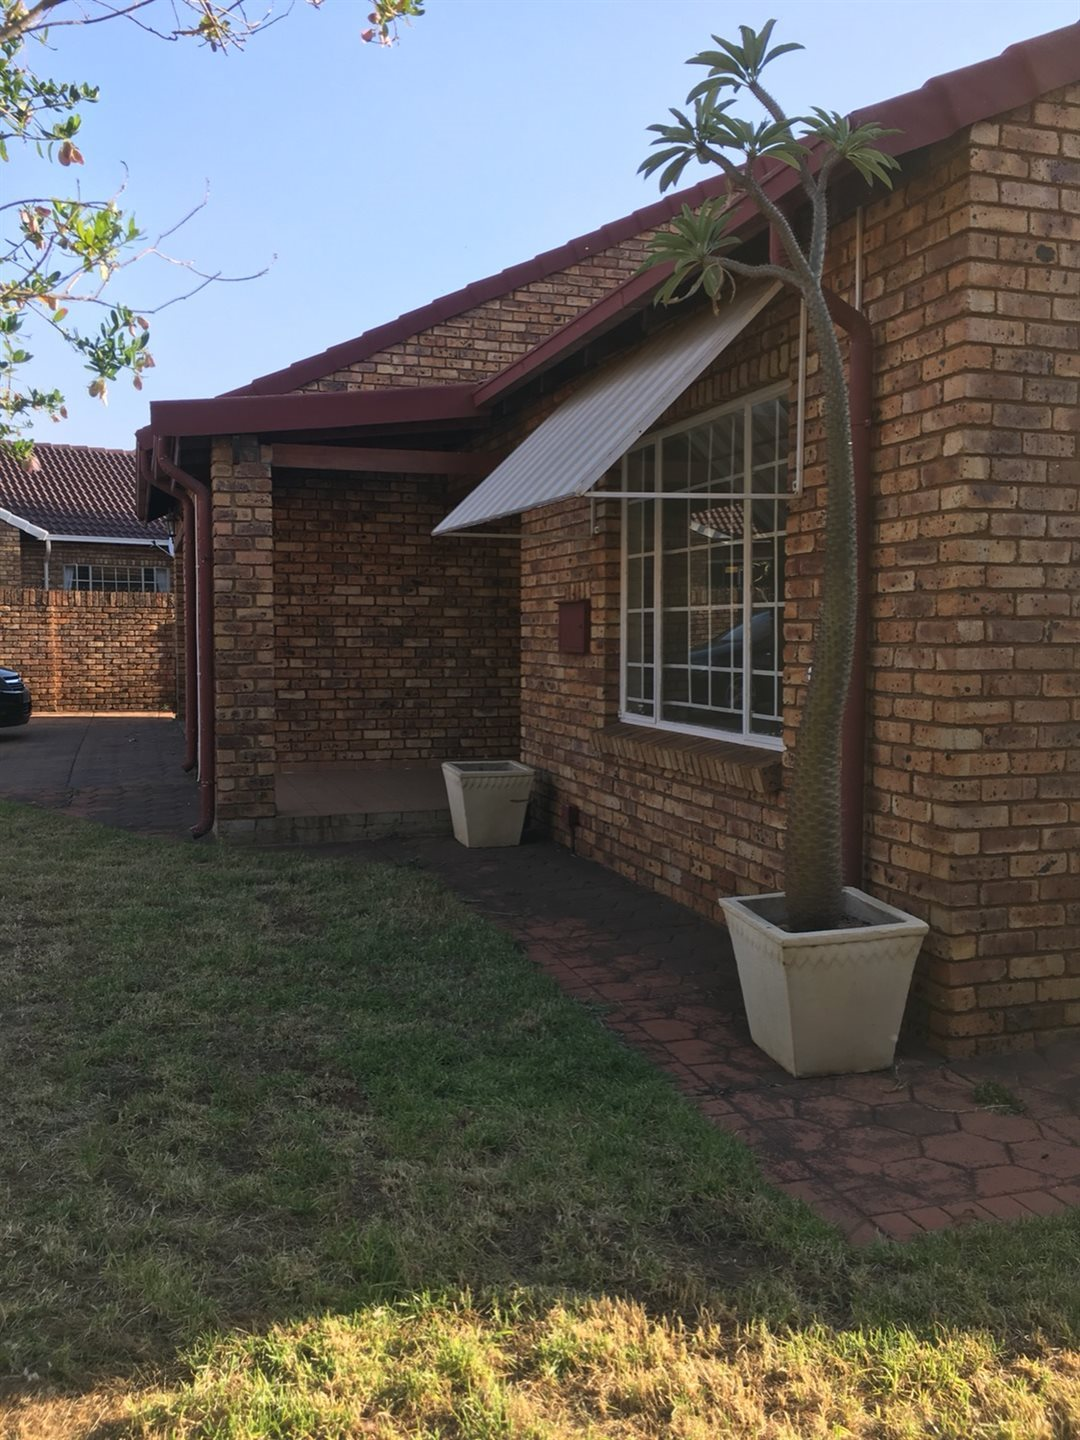 Centurion, Rooihuiskraal North Property  | Houses For Sale Rooihuiskraal North, Rooihuiskraal North, House 3 bedrooms property for sale Price:1,627,500